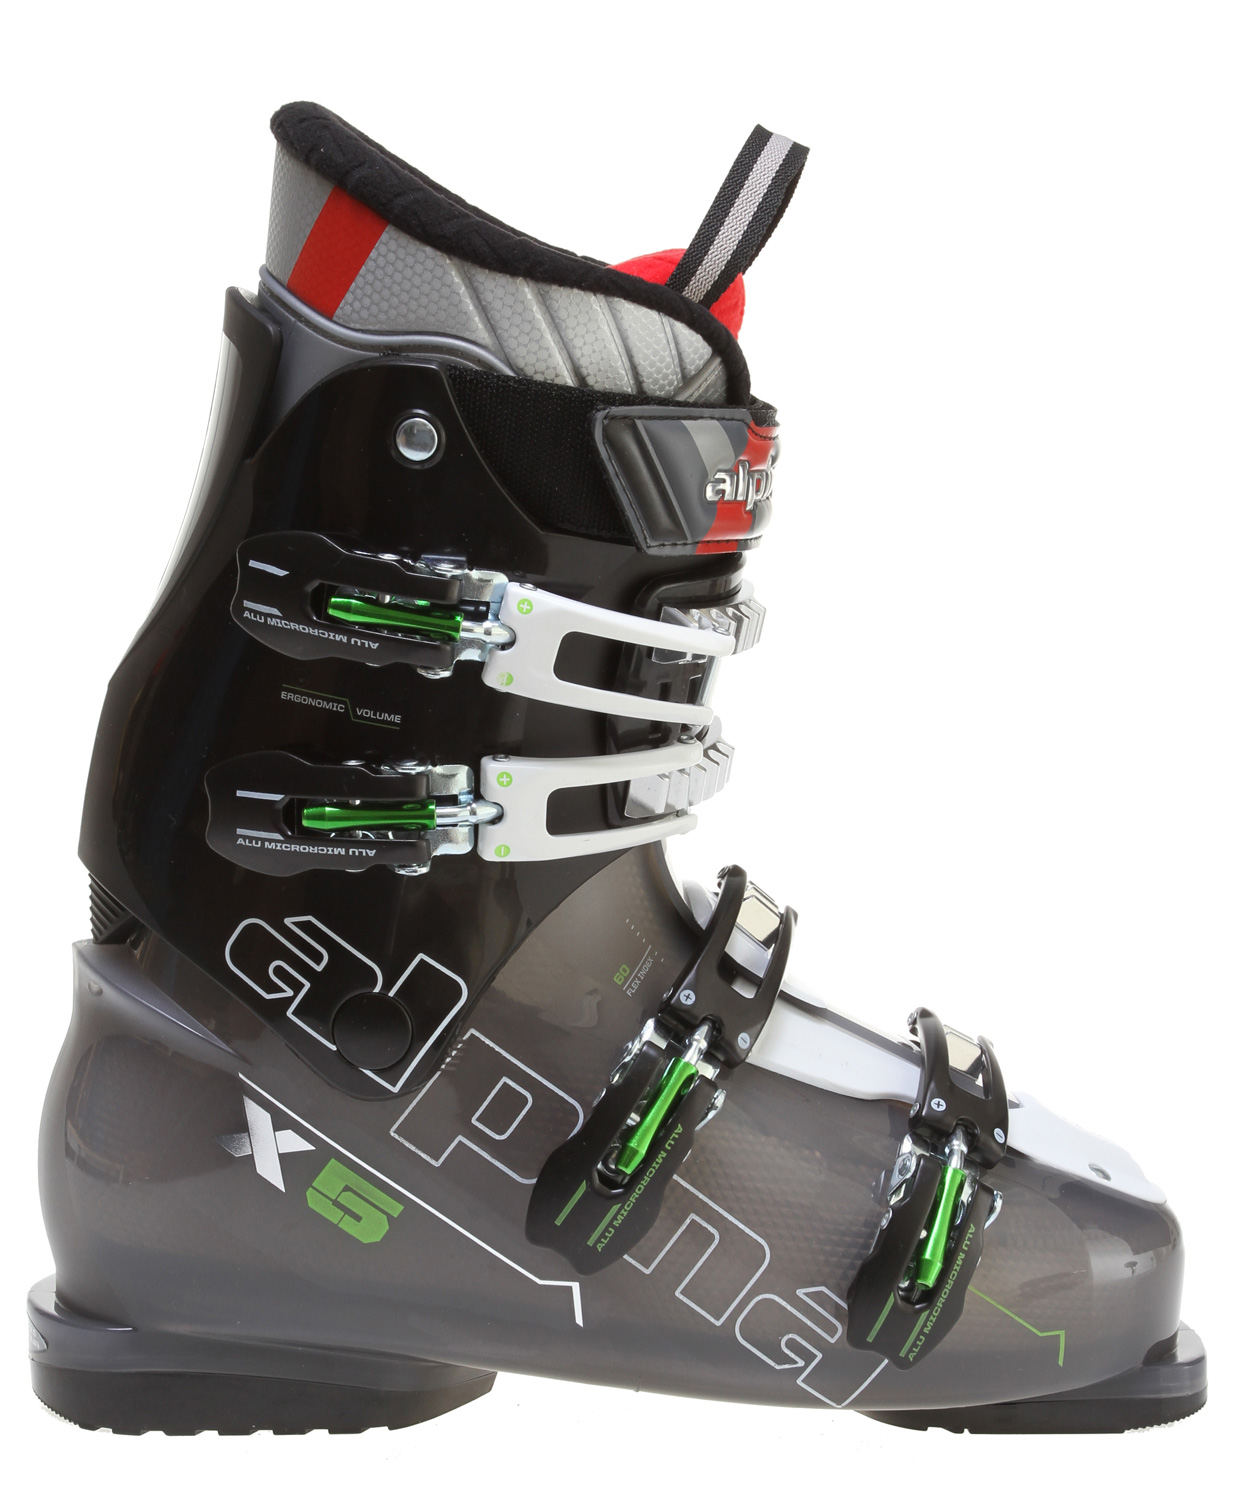 Ski Key Features of the Alpina X5 Ski Boots: Sport fit liner PP shell & cuff material Flex Index 60 Men's last Ergonomic shell volume Anatomic footbed Thermo unifit padding New ALU micro adjustable buckles Macro adjustable catches Power strap 35mm - $207.95